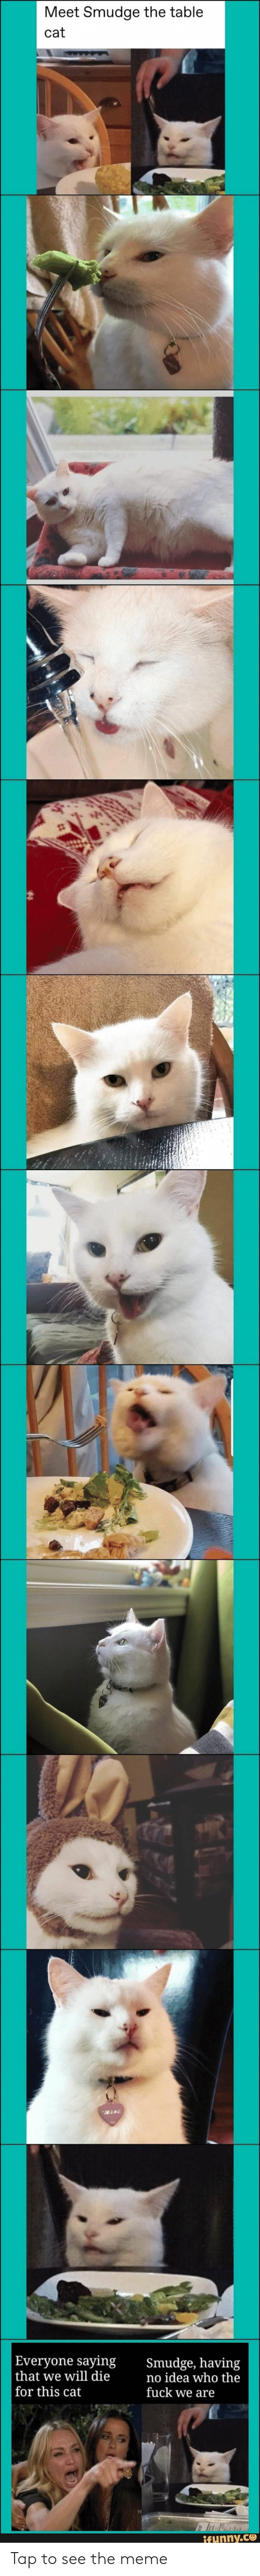 Meme, Fuck, and Idea: Meet Smudge the table  cat  |Everyone saying  that we will die  for this cat  Smudge, having  no idea who the  fuck we are  taLA  ifunny.co Tap to see the meme